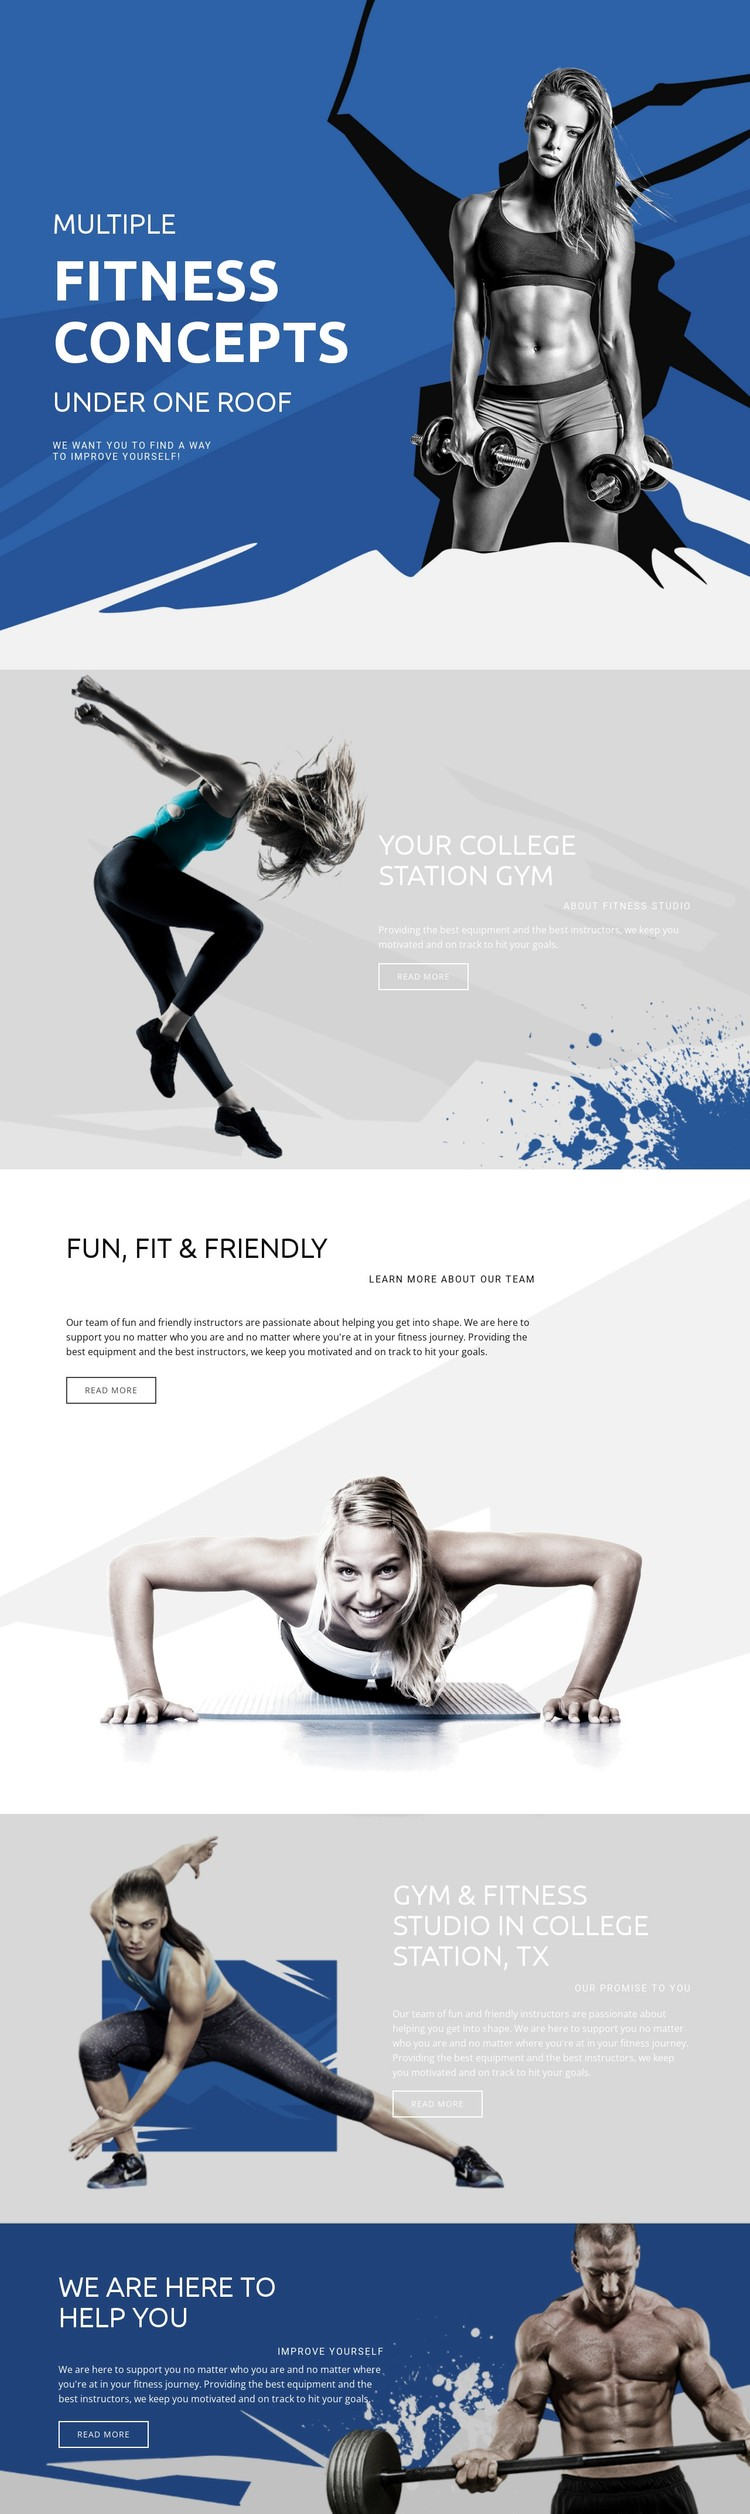 Best fitness and sports Static Site Generator